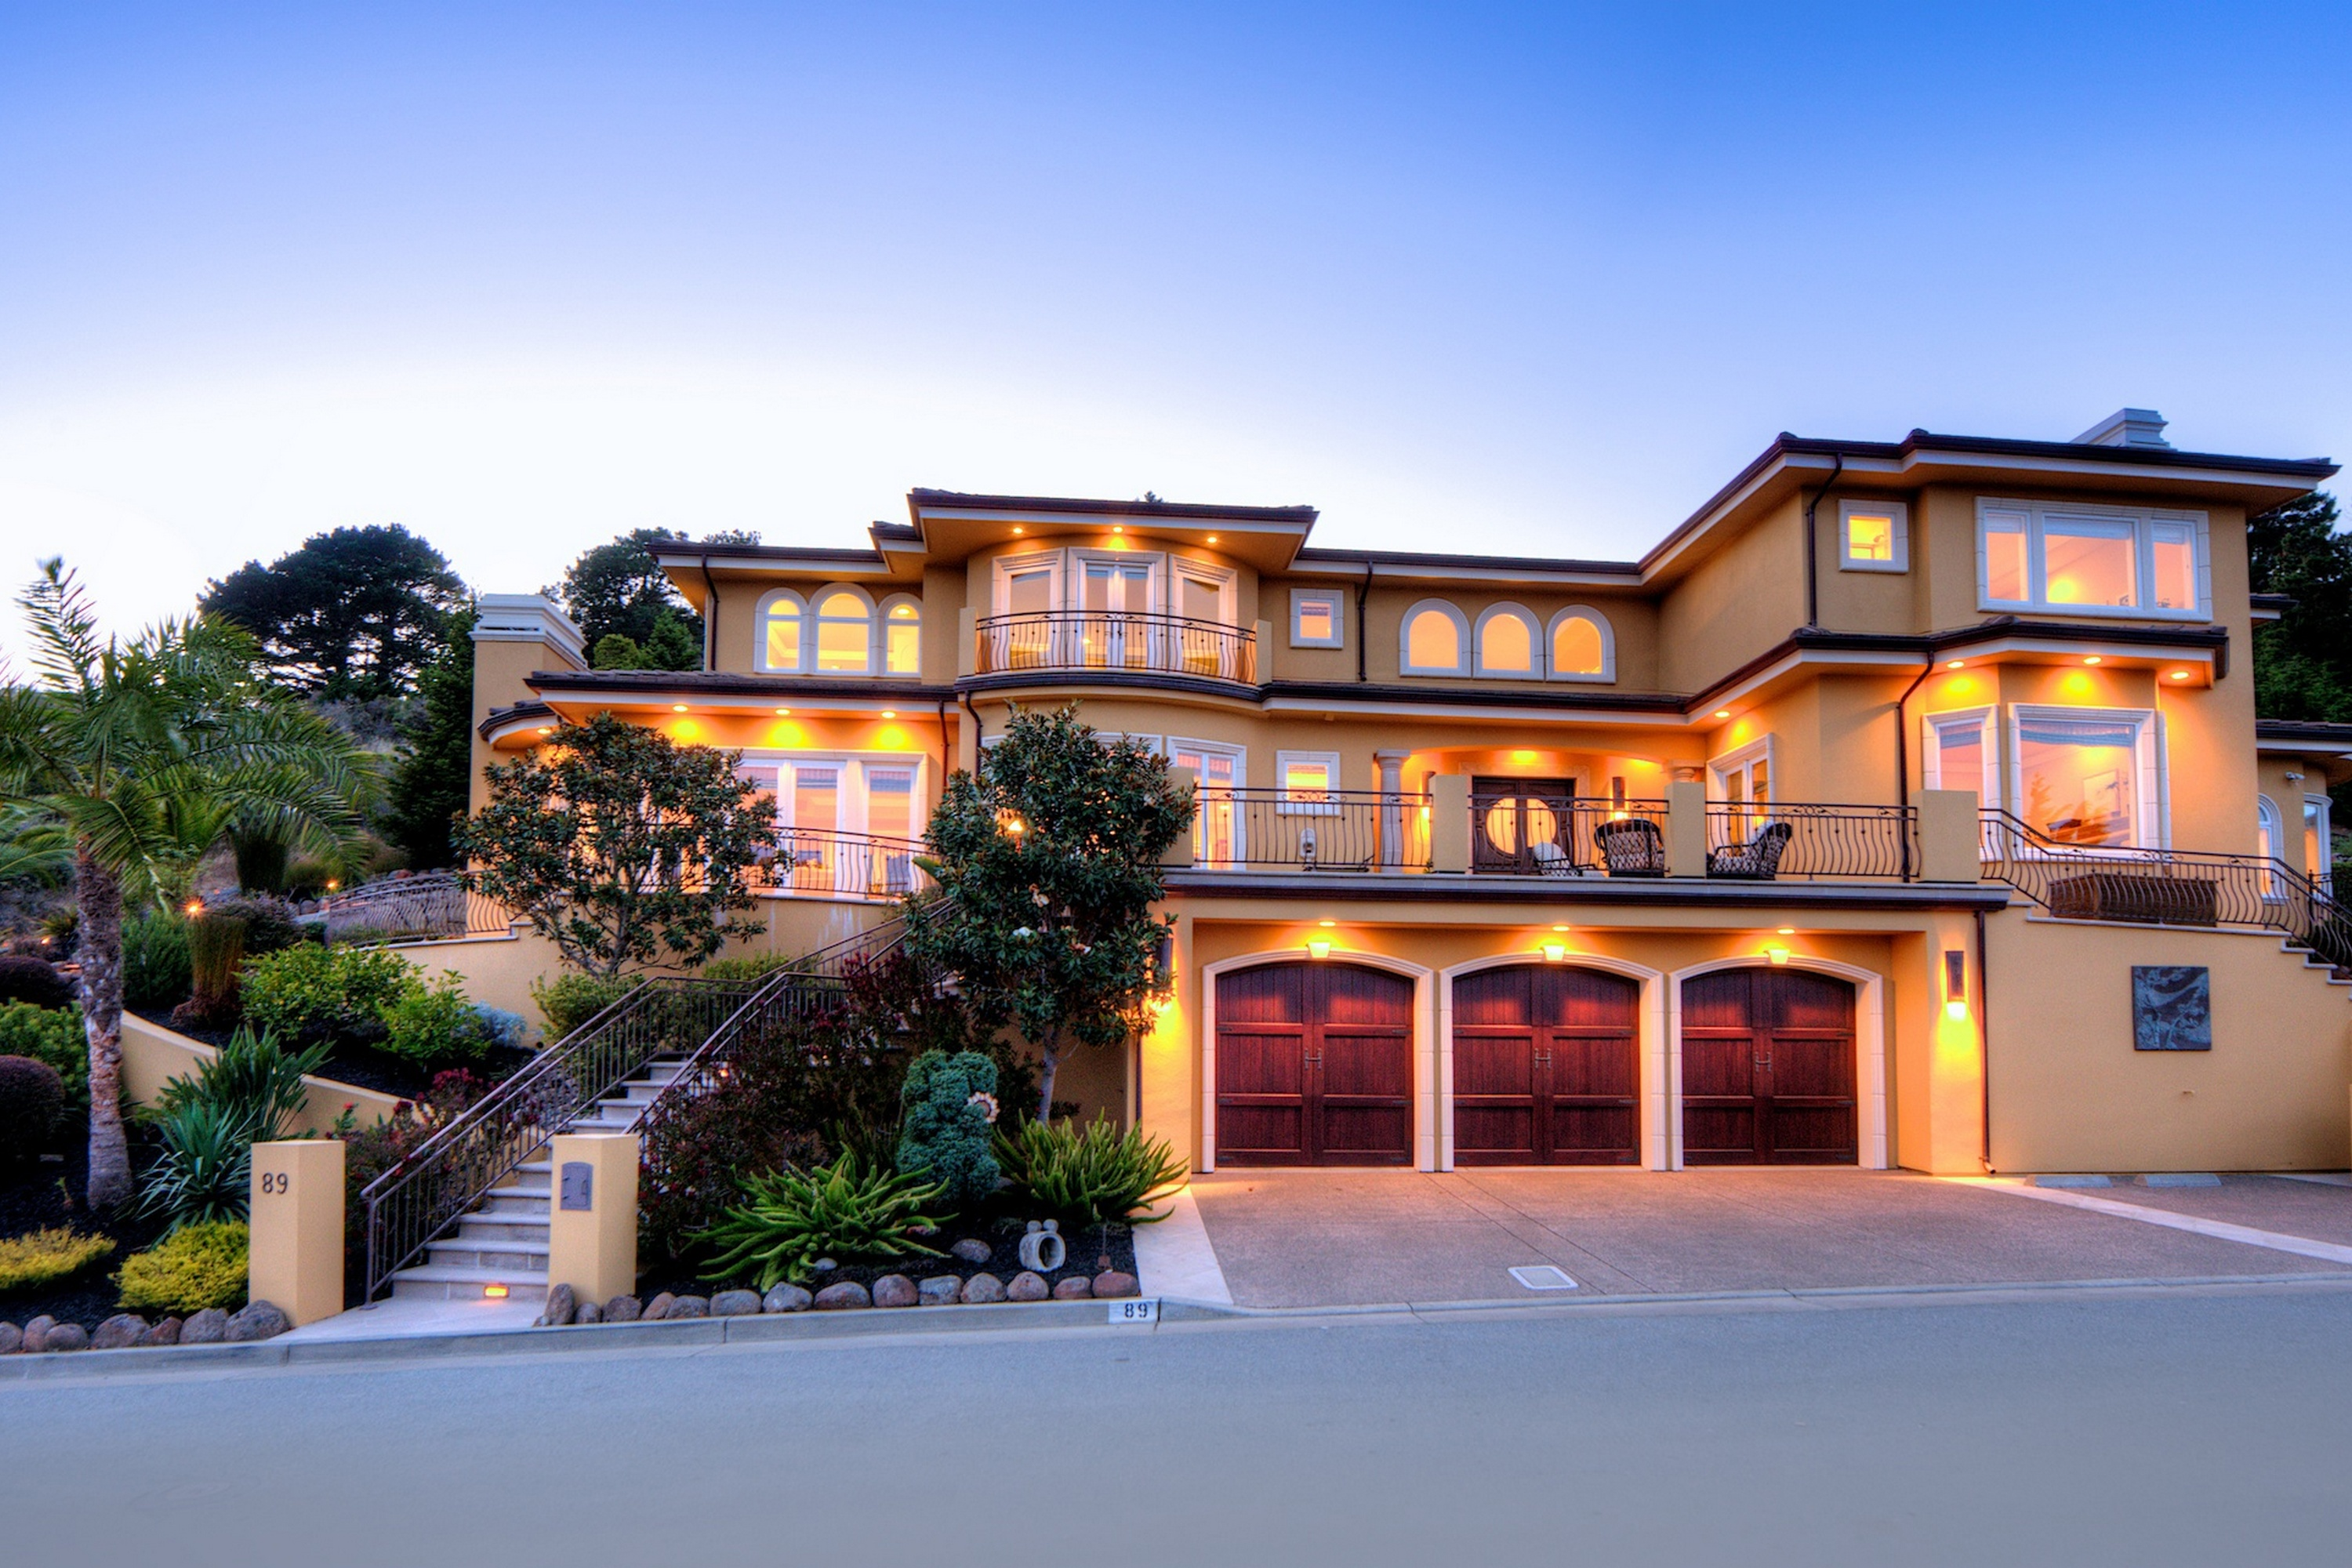 Single Family Home for Sale at Craftsmanship & Luxurious Design 89 Vista Del Sol Mill Valley, California 94941 United States